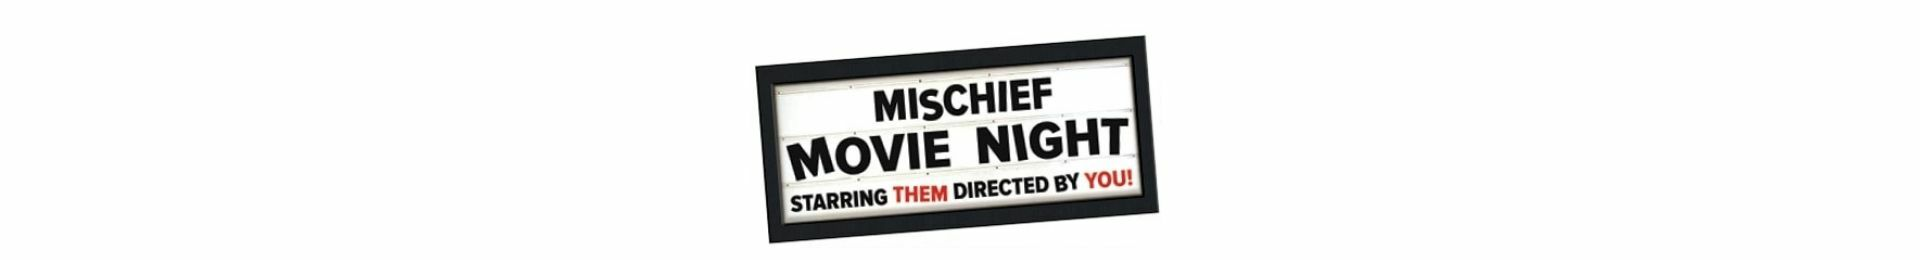 Mischief Movie Night banner image